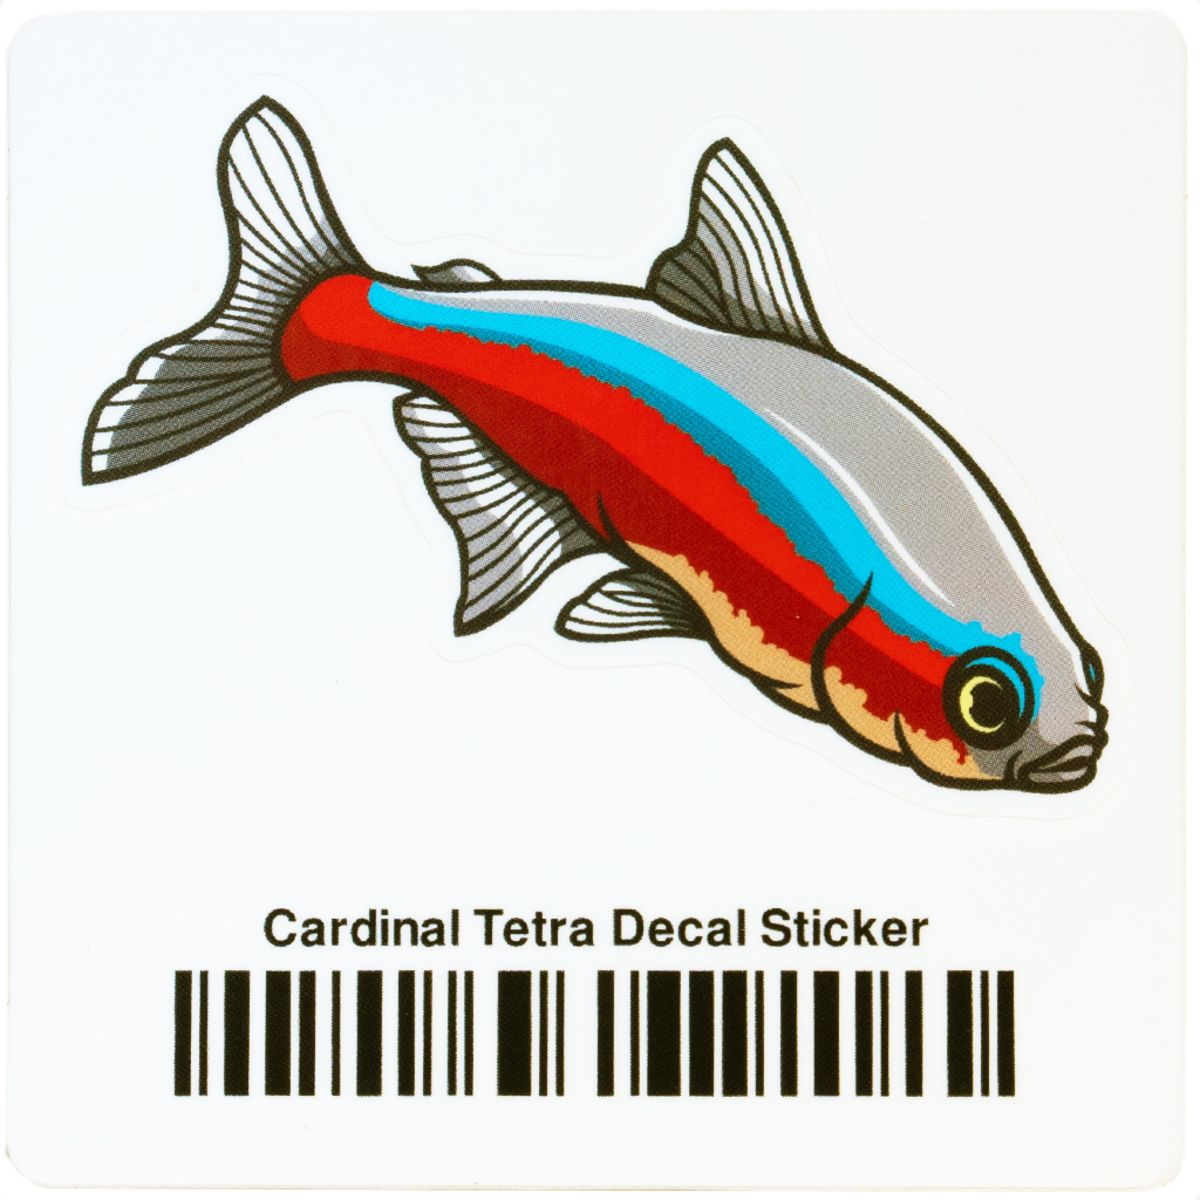 Cardinal Tetra Decal Sticker